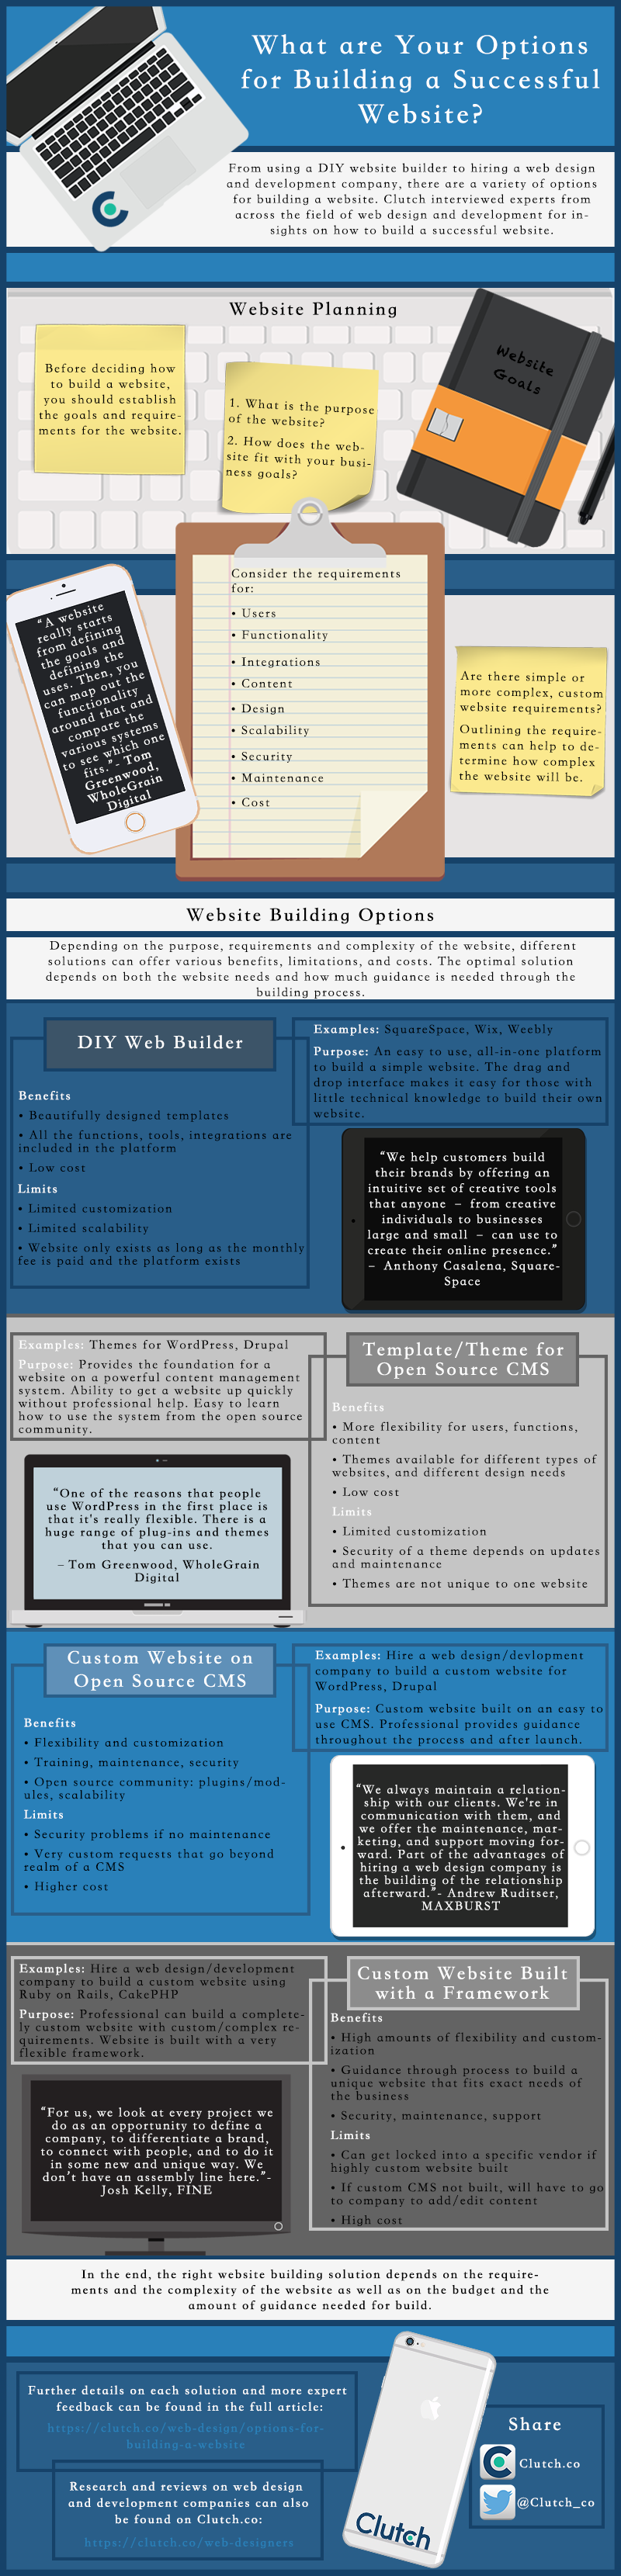 Options for building a website infographic